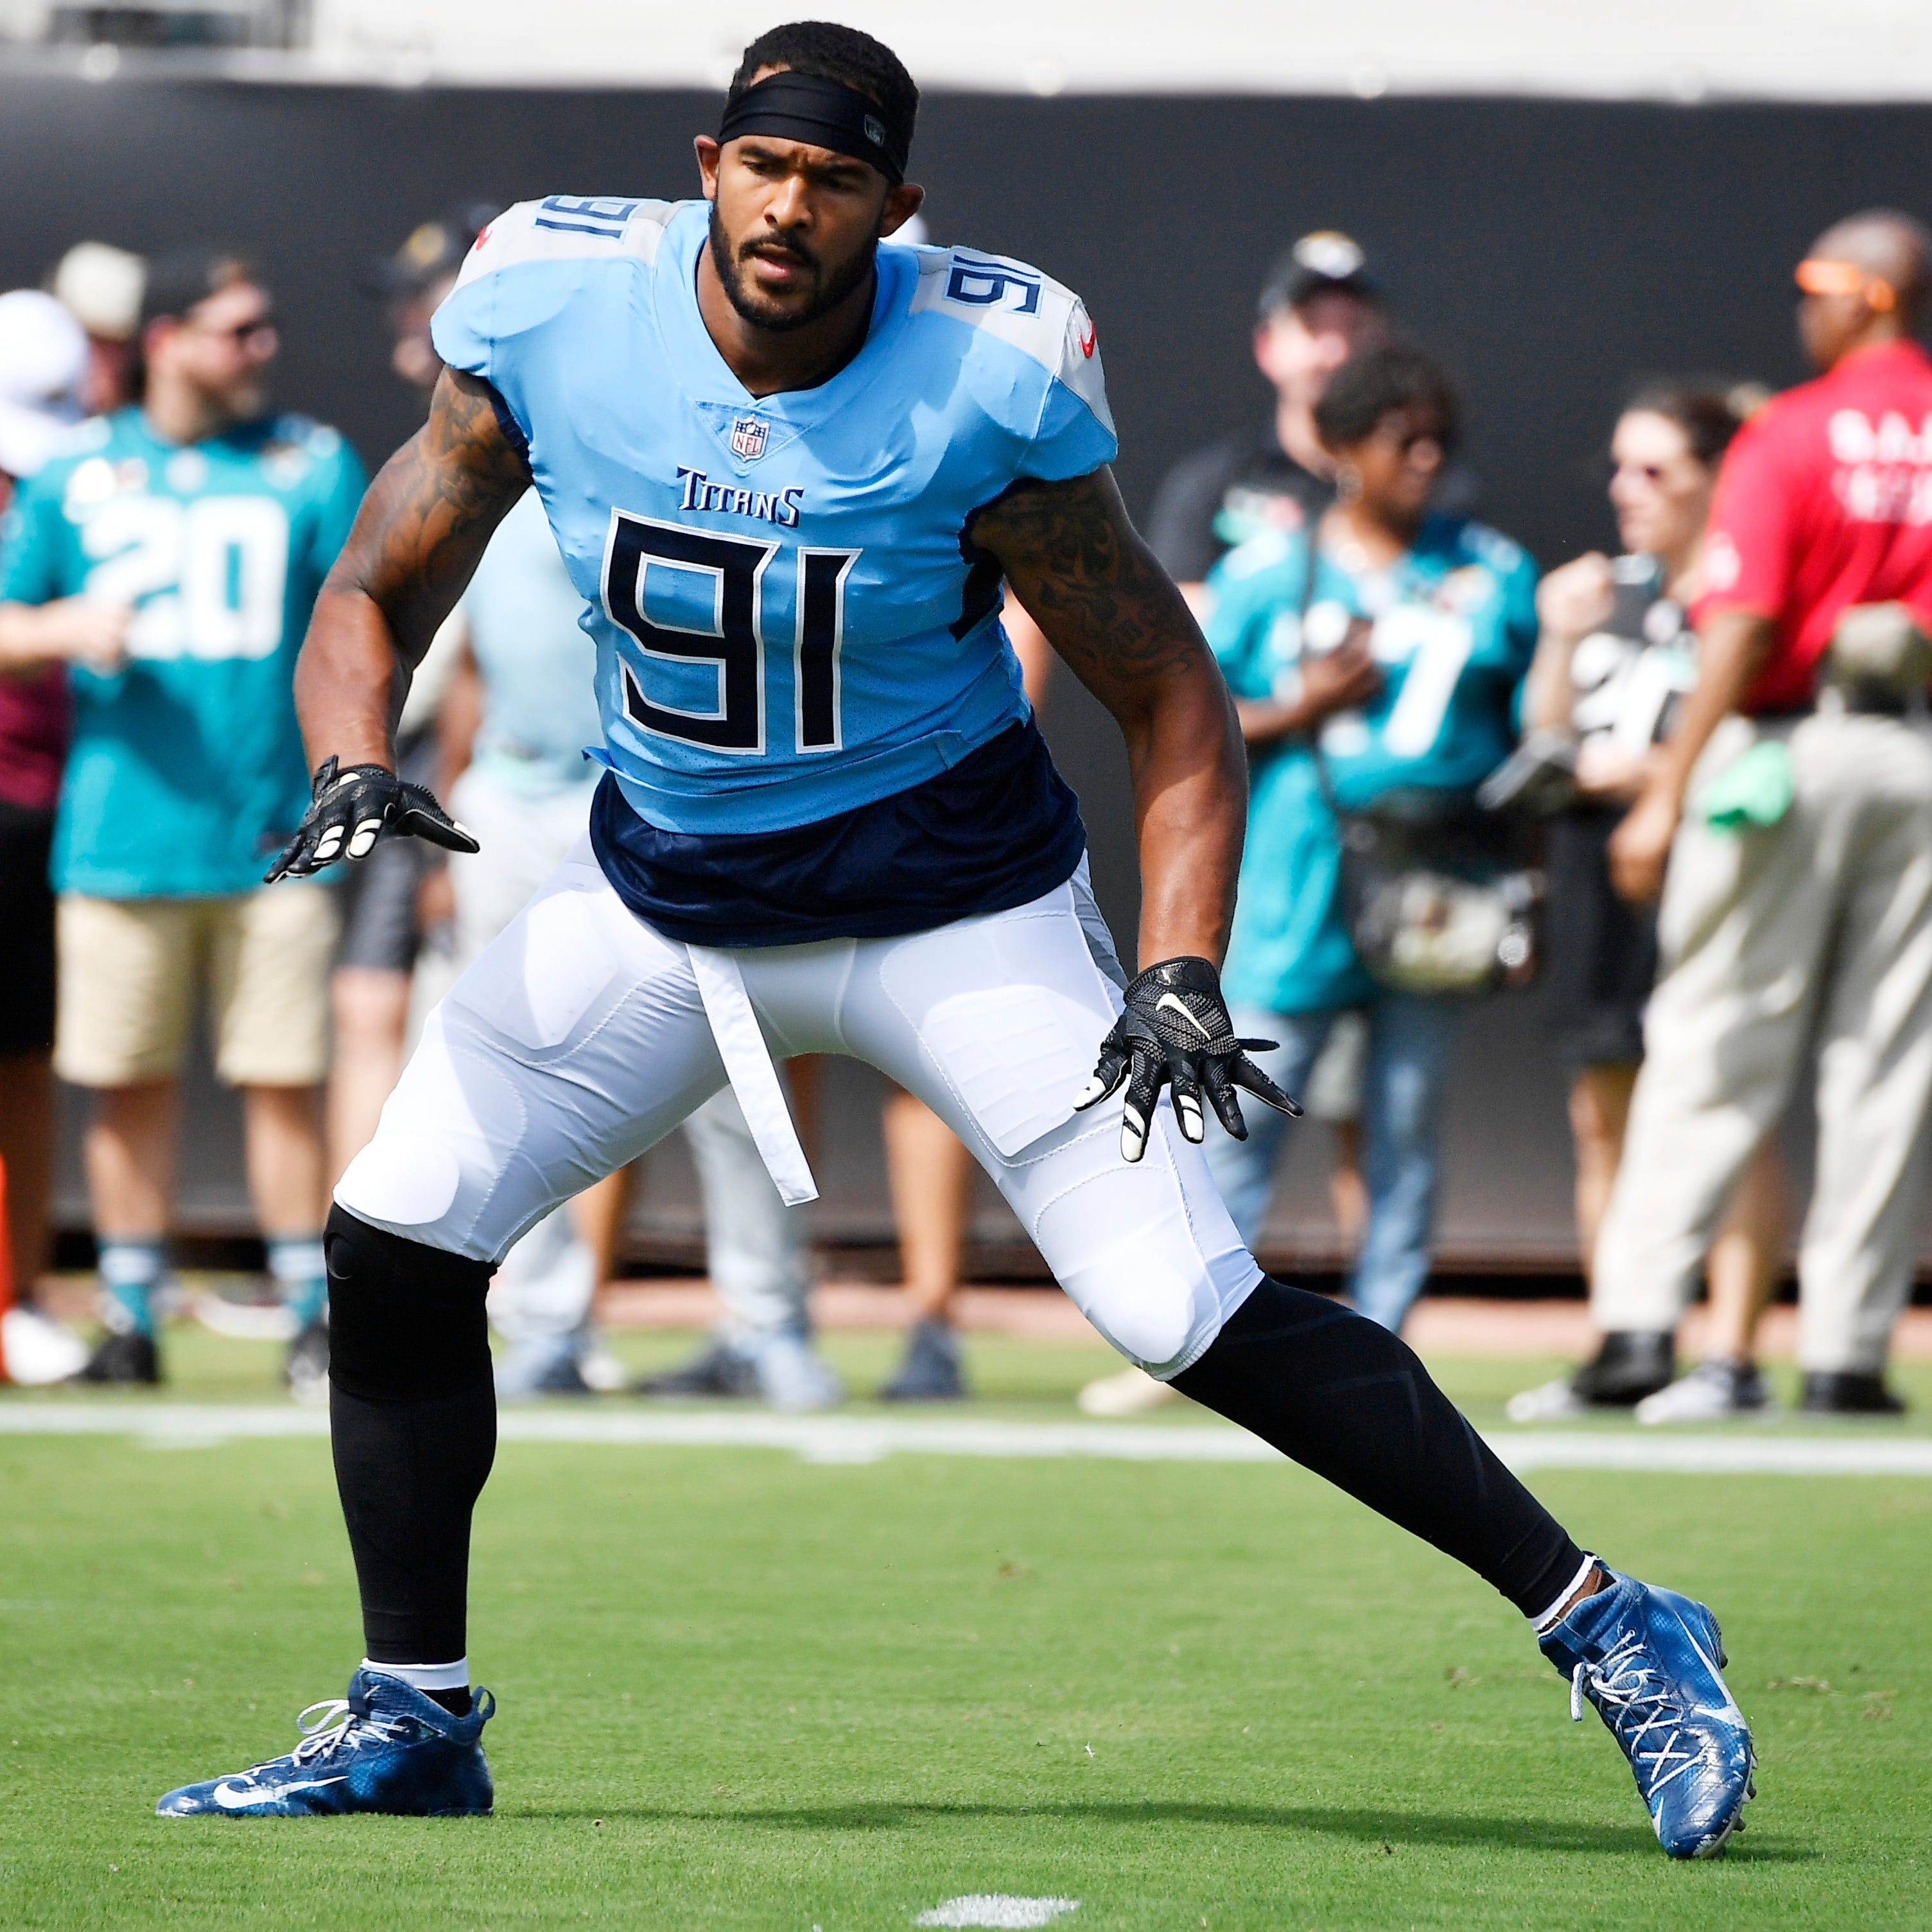 Titans injury update: Jack Conklin, Taywan Taylor, Derrick Morgan progressing